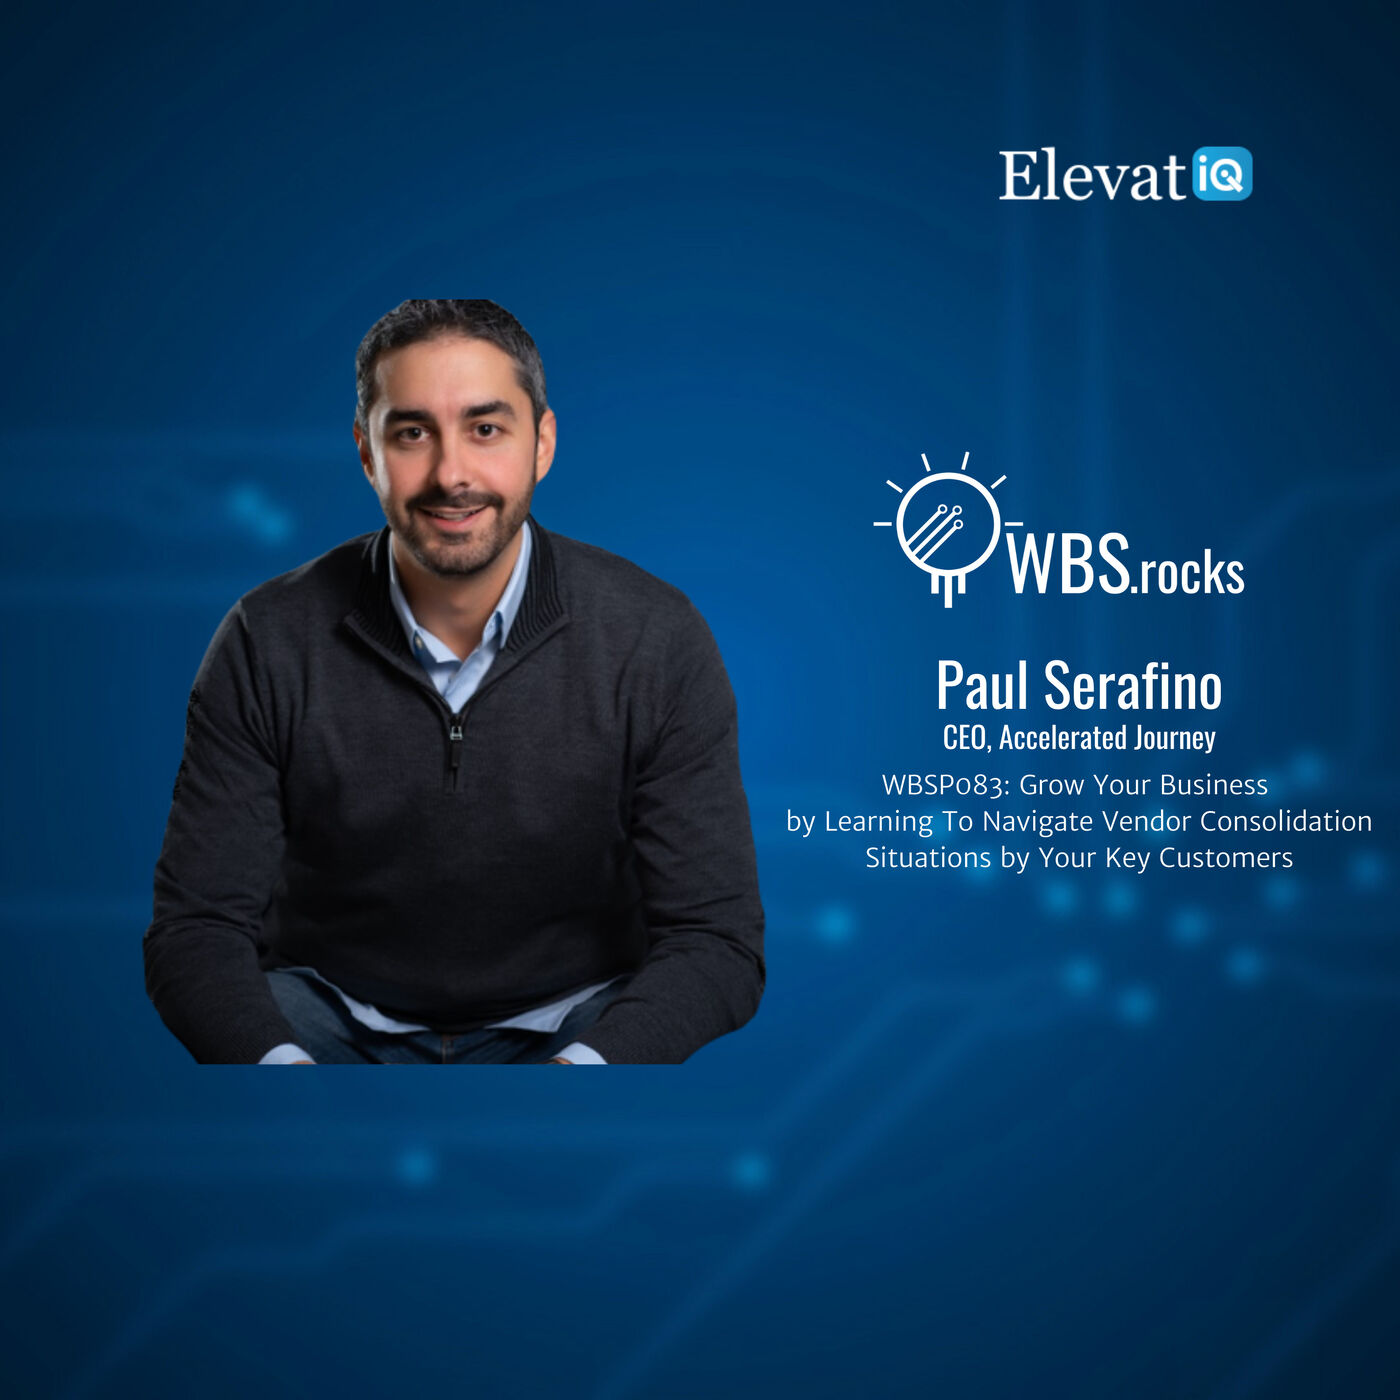 WBSP083: Grow Your Business by Learning To Navigate Vendor Consolidation Situations by Your Key Customers w/ Paul Serafino